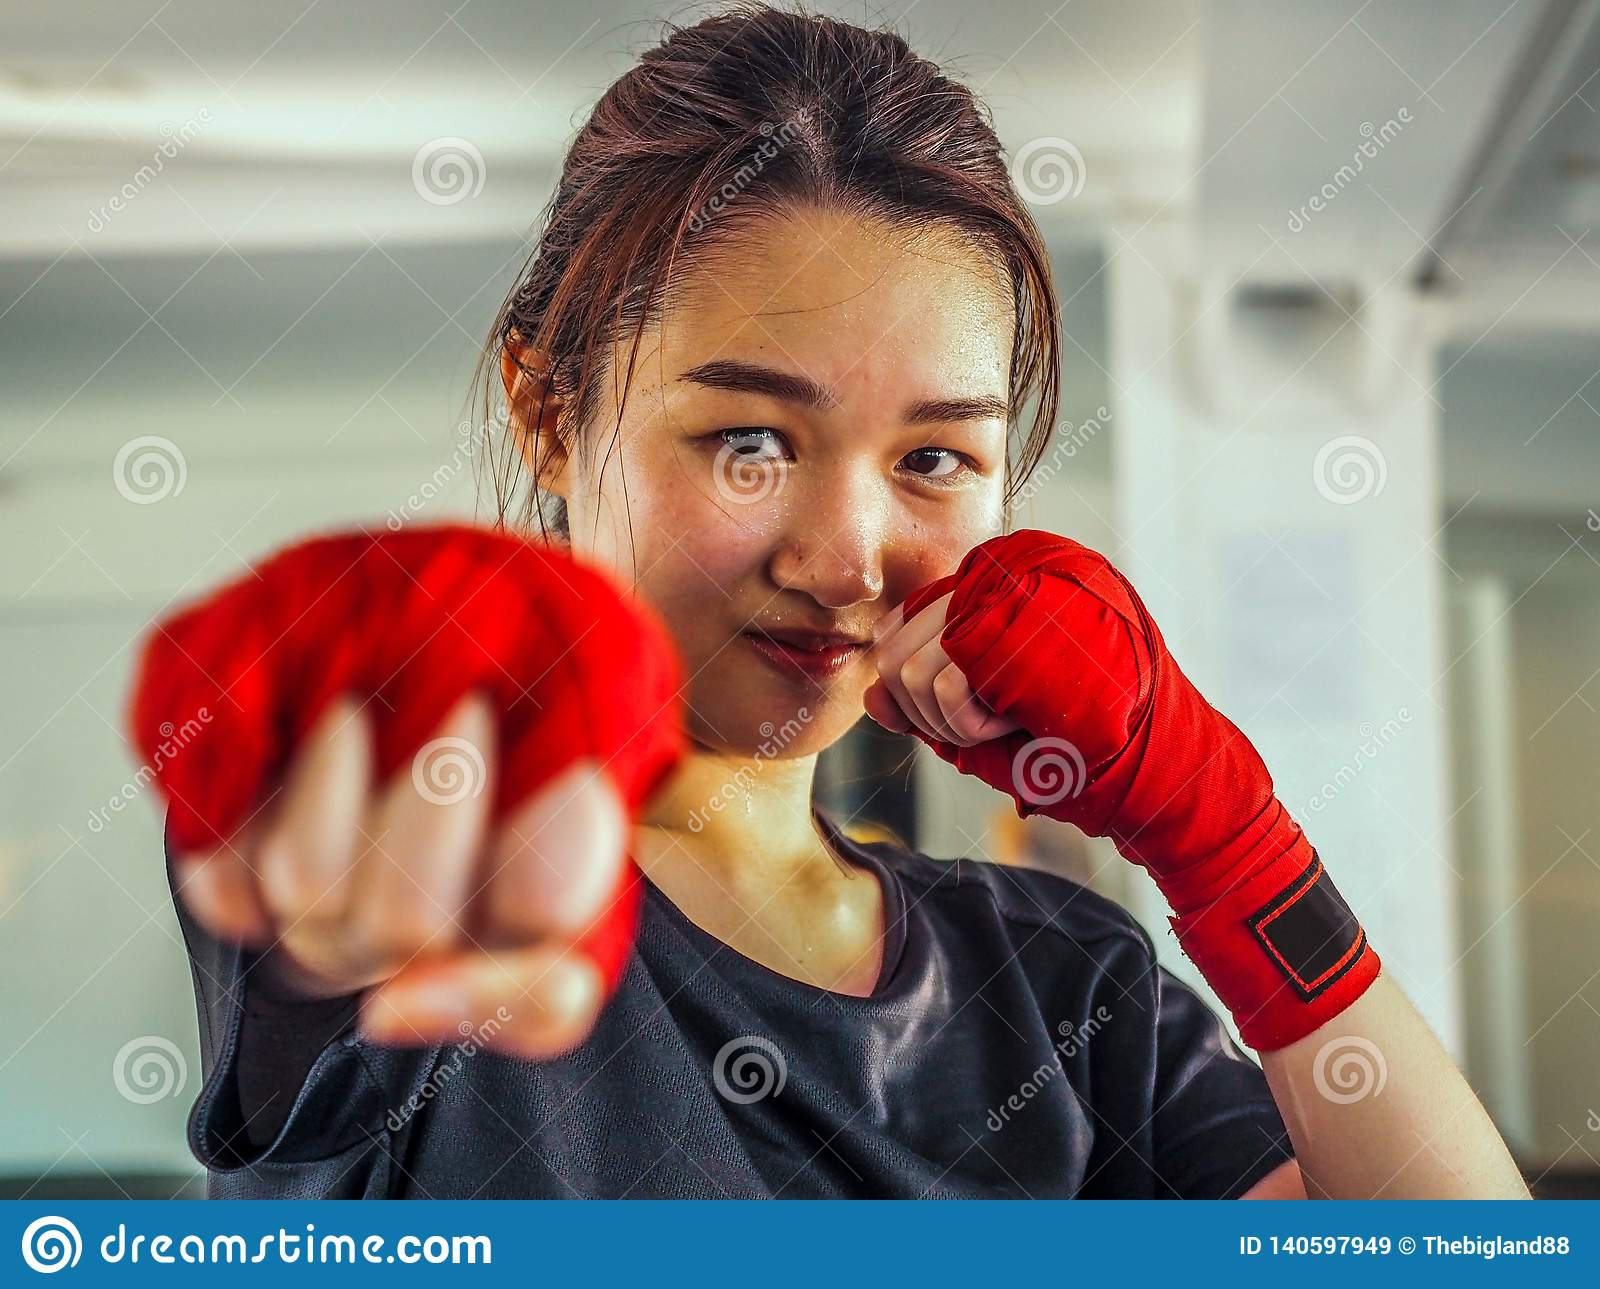 Selected focus of young beautiful women wear a red Thai boxing tape ready for punching